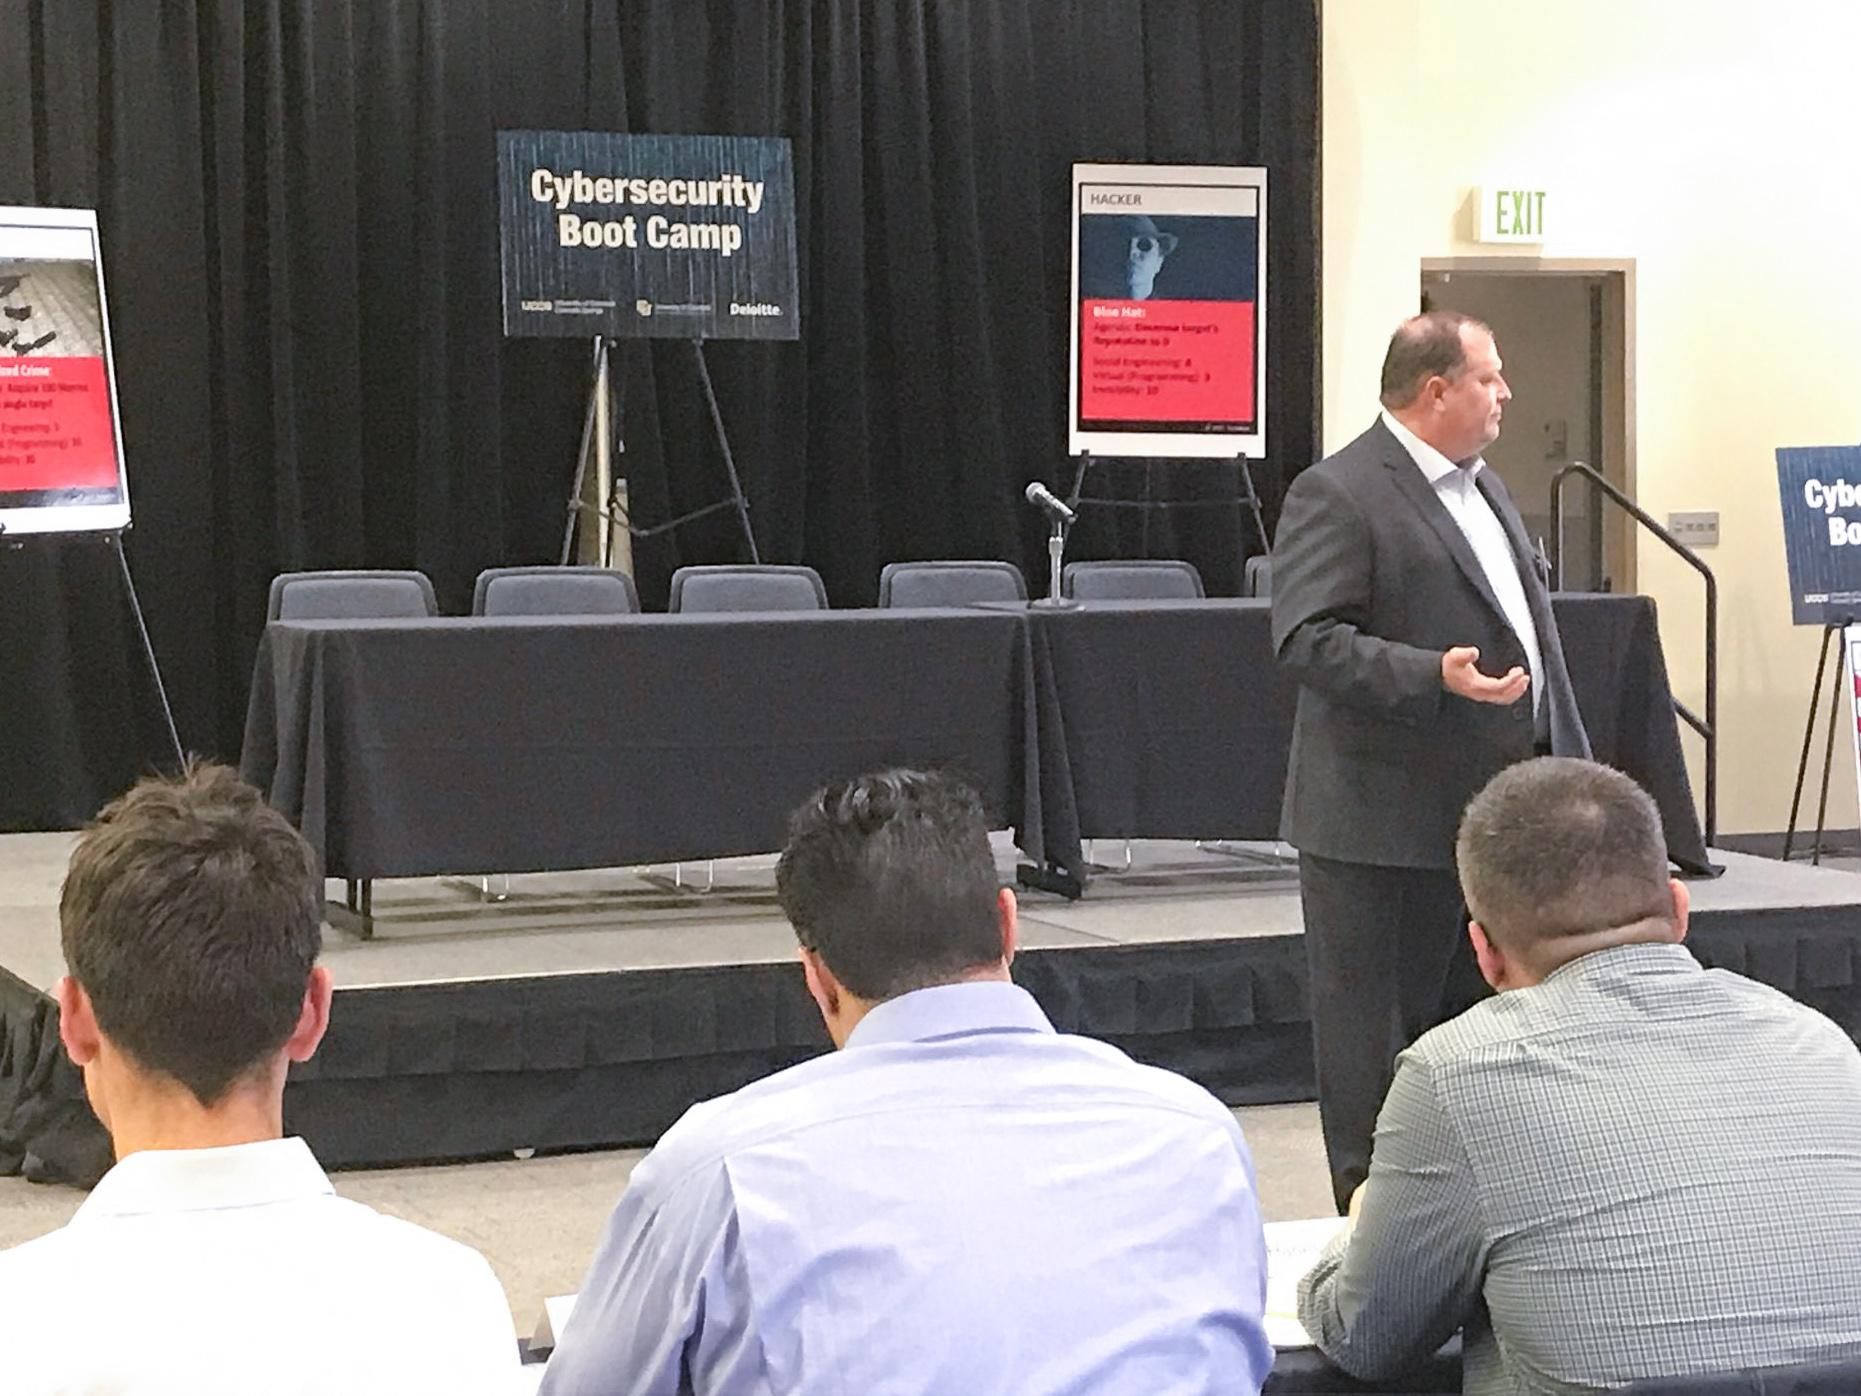 Students learn from industry experts in Third Cybersecurity